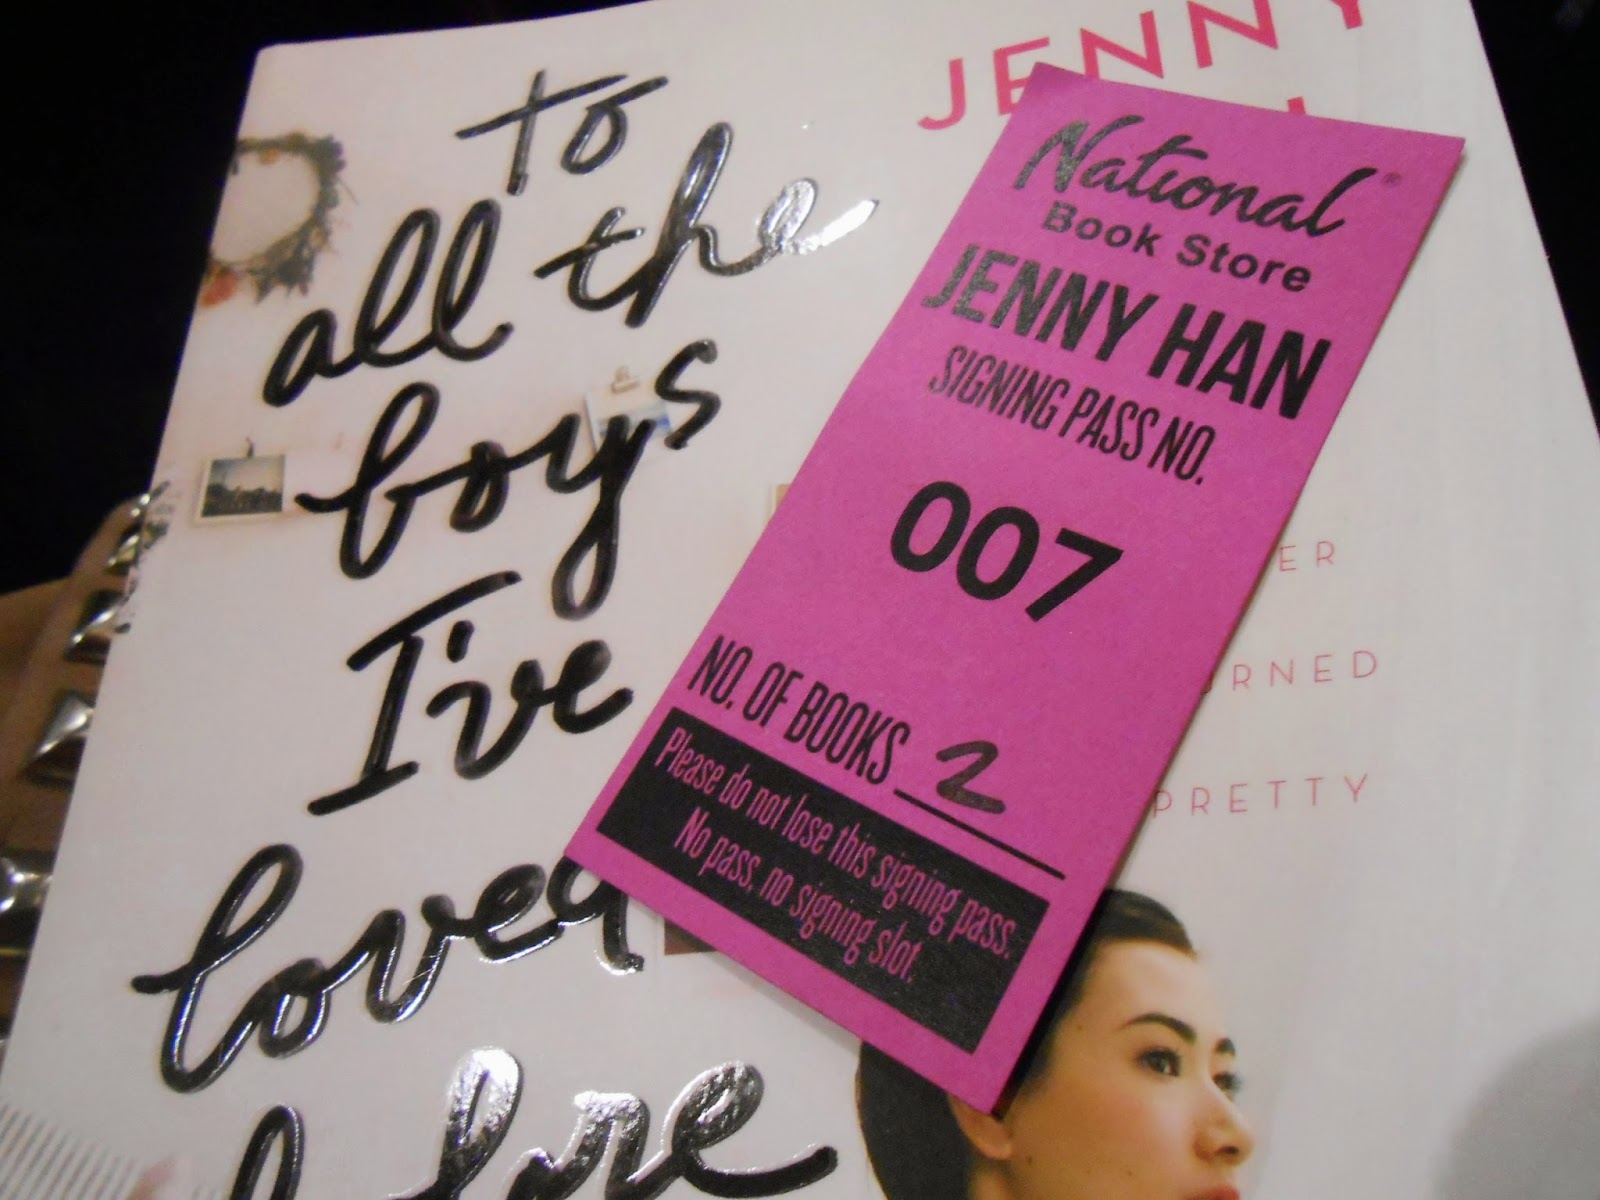 Jenny Han: Book Signing Event #4